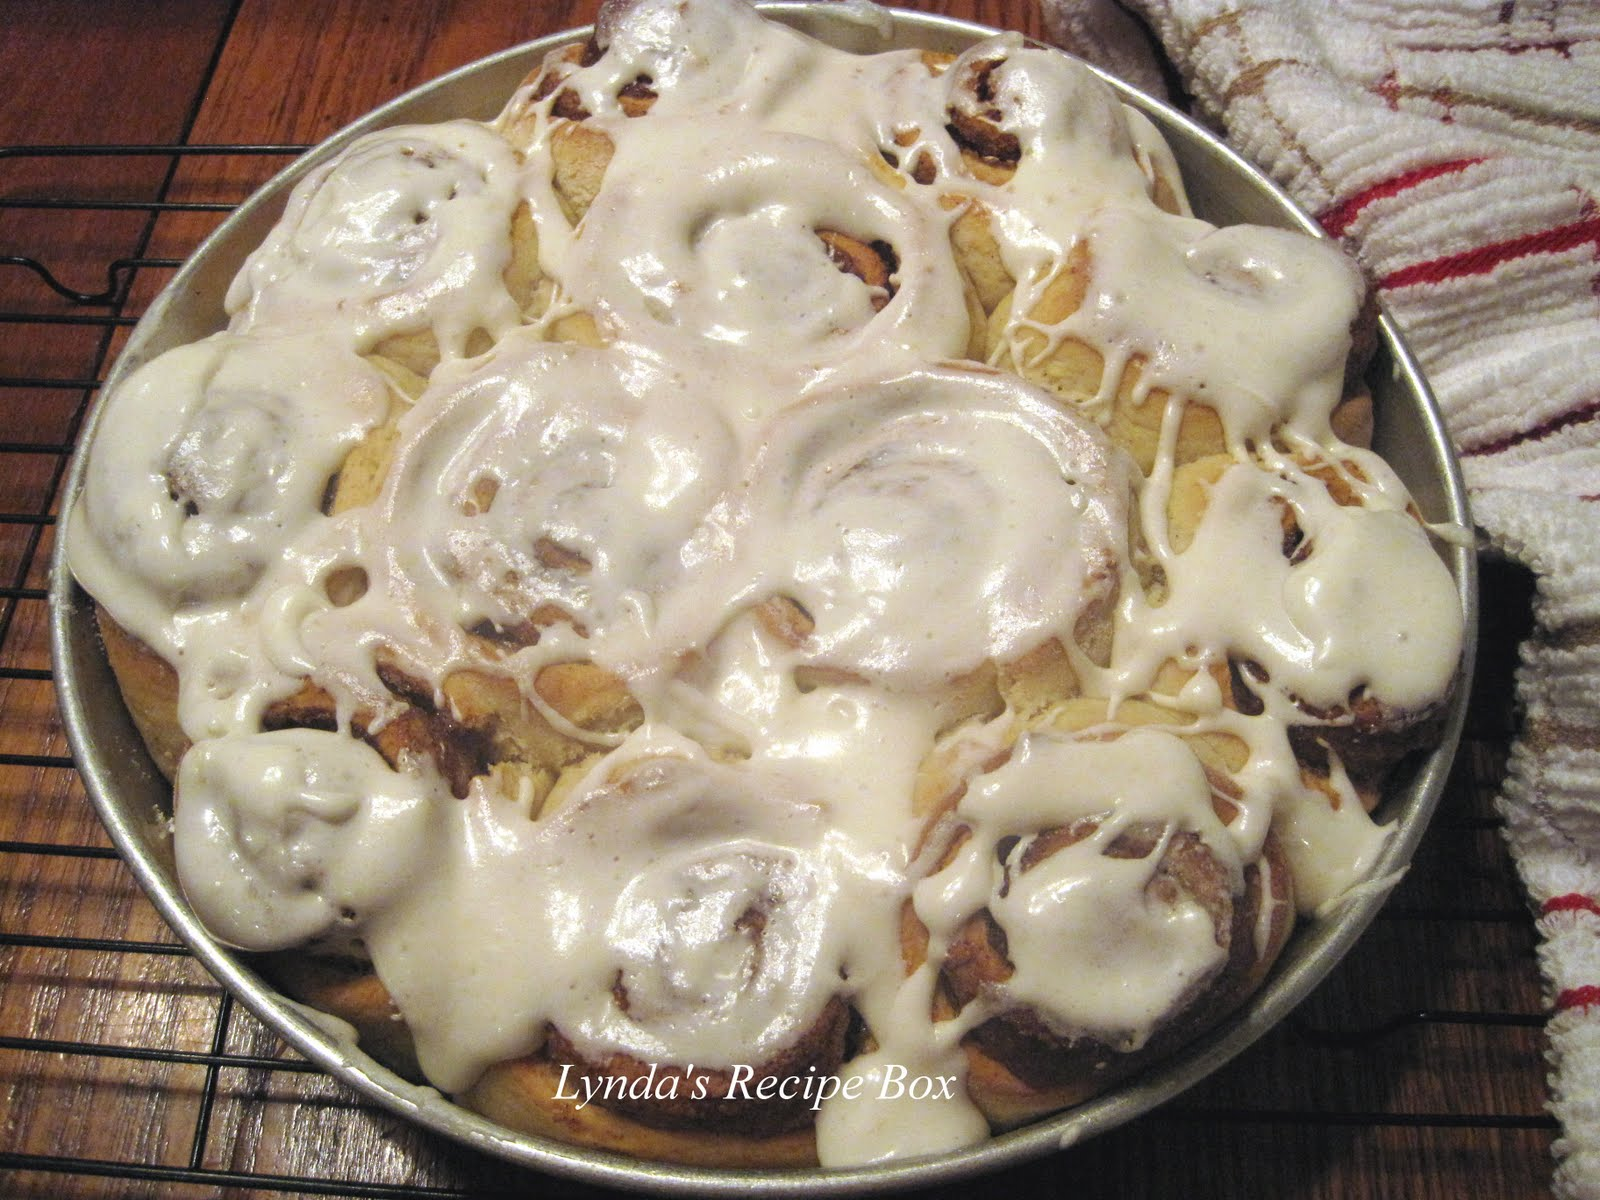 Lynda's Recipe Box: Fastest Cinnamon Buns ( No Yeast)